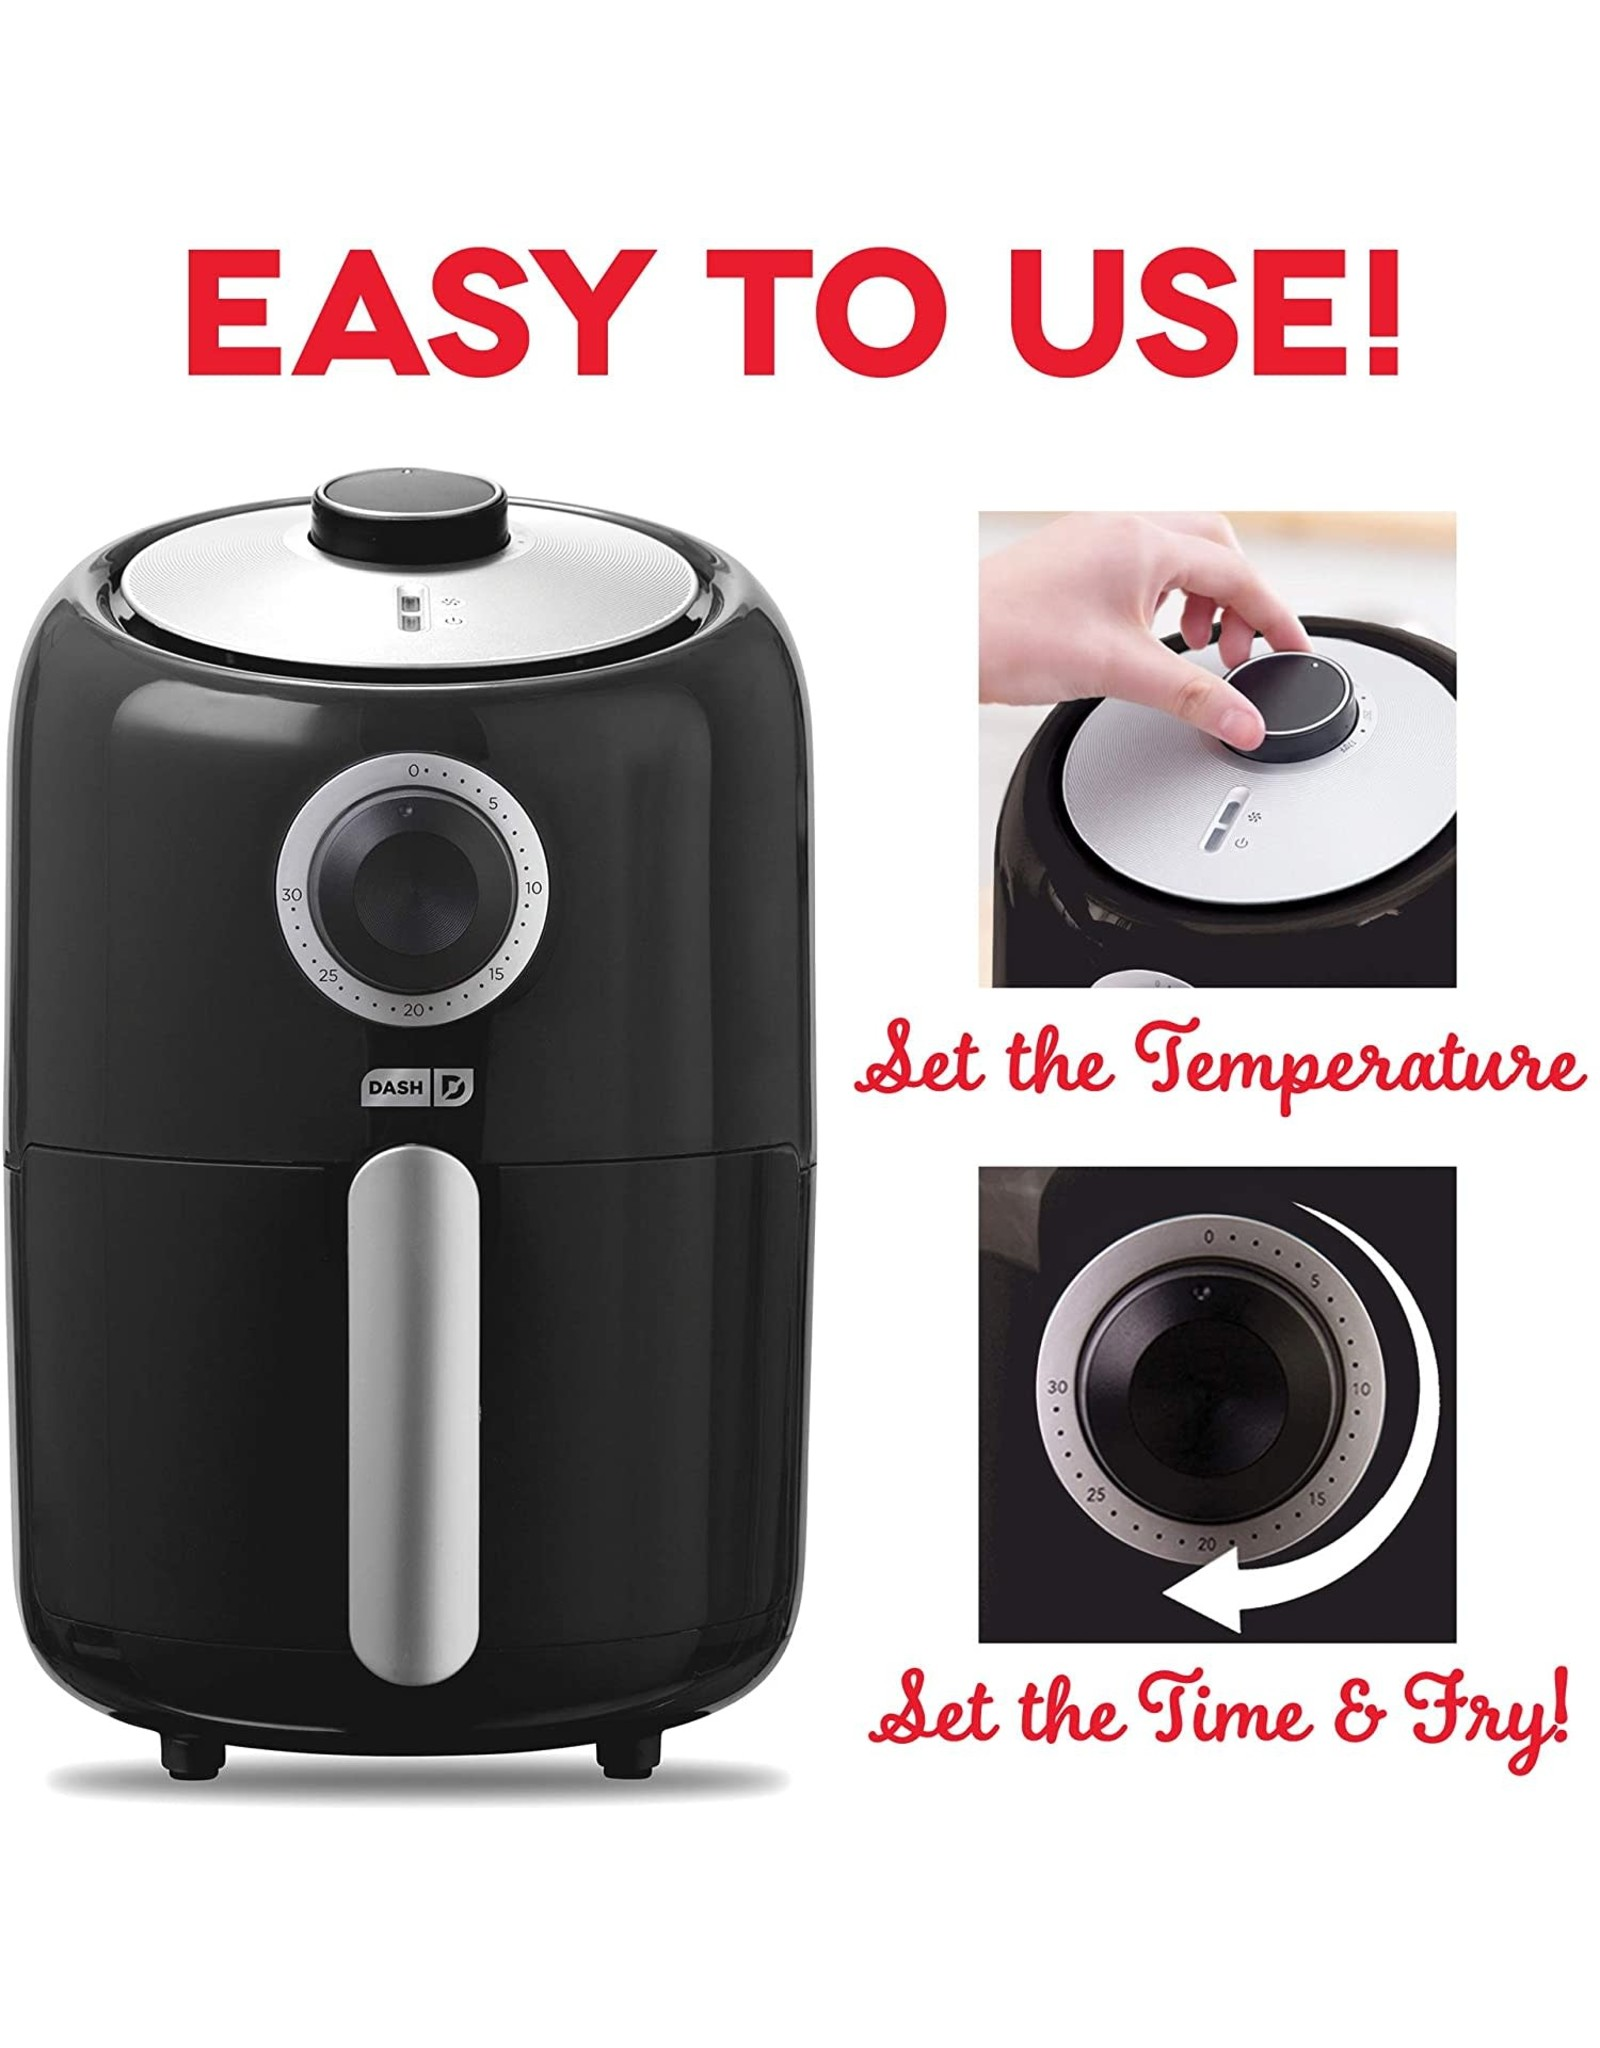 DASH Dash DCAF150GBBK02 Compact Air Fryer Oven Cooker with Temperature Control, Non Stick Fry Basket, Recipe Guide + Auto Shut off Feature, 2qt, Black